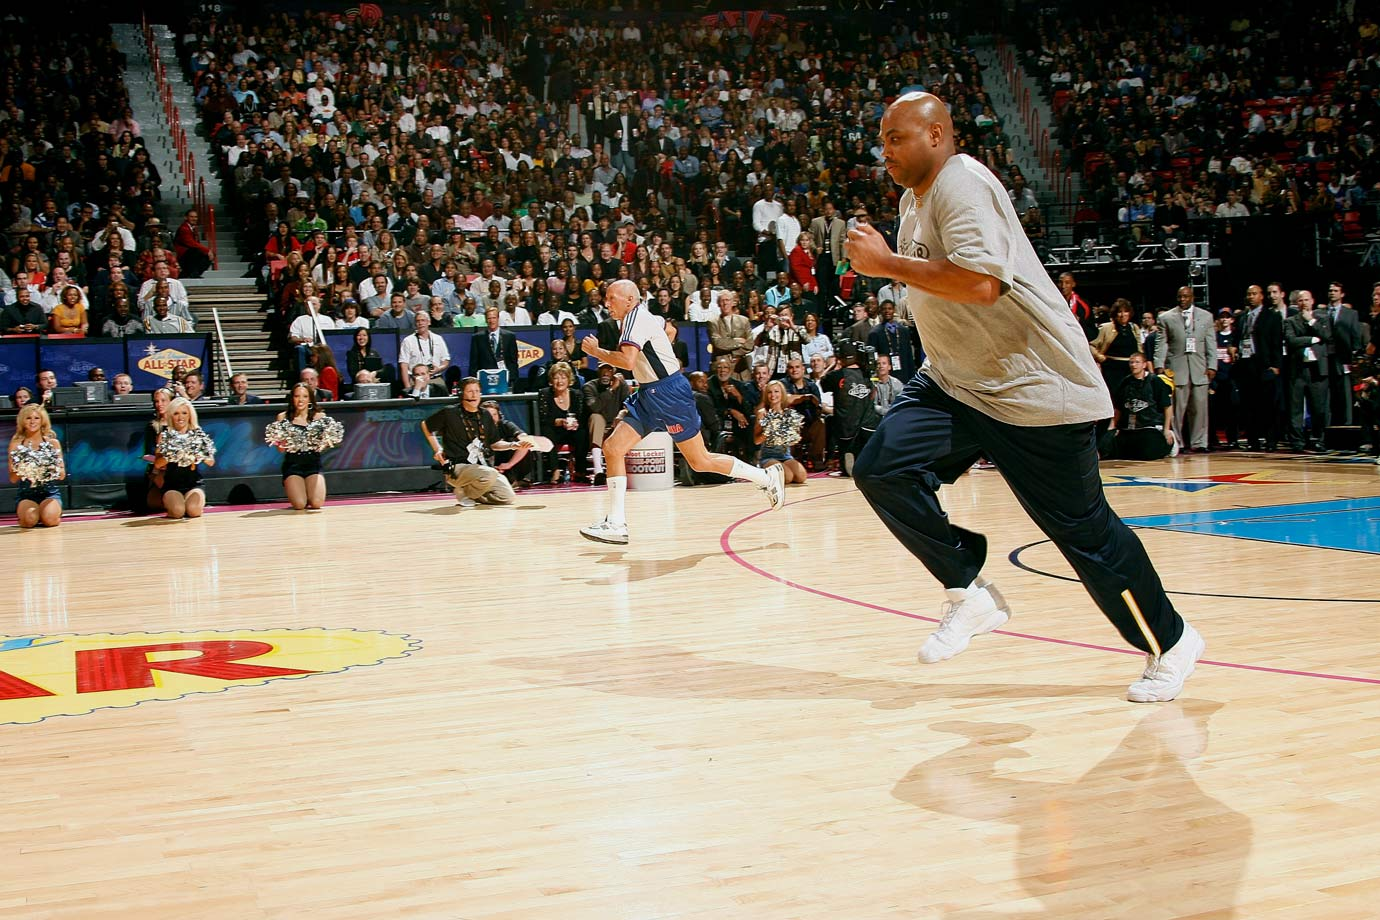 Charles Barkley races NBA referee Dick Bavetta during NBA All-Star Saturday Night in Las Vegas. Barkley won the race.